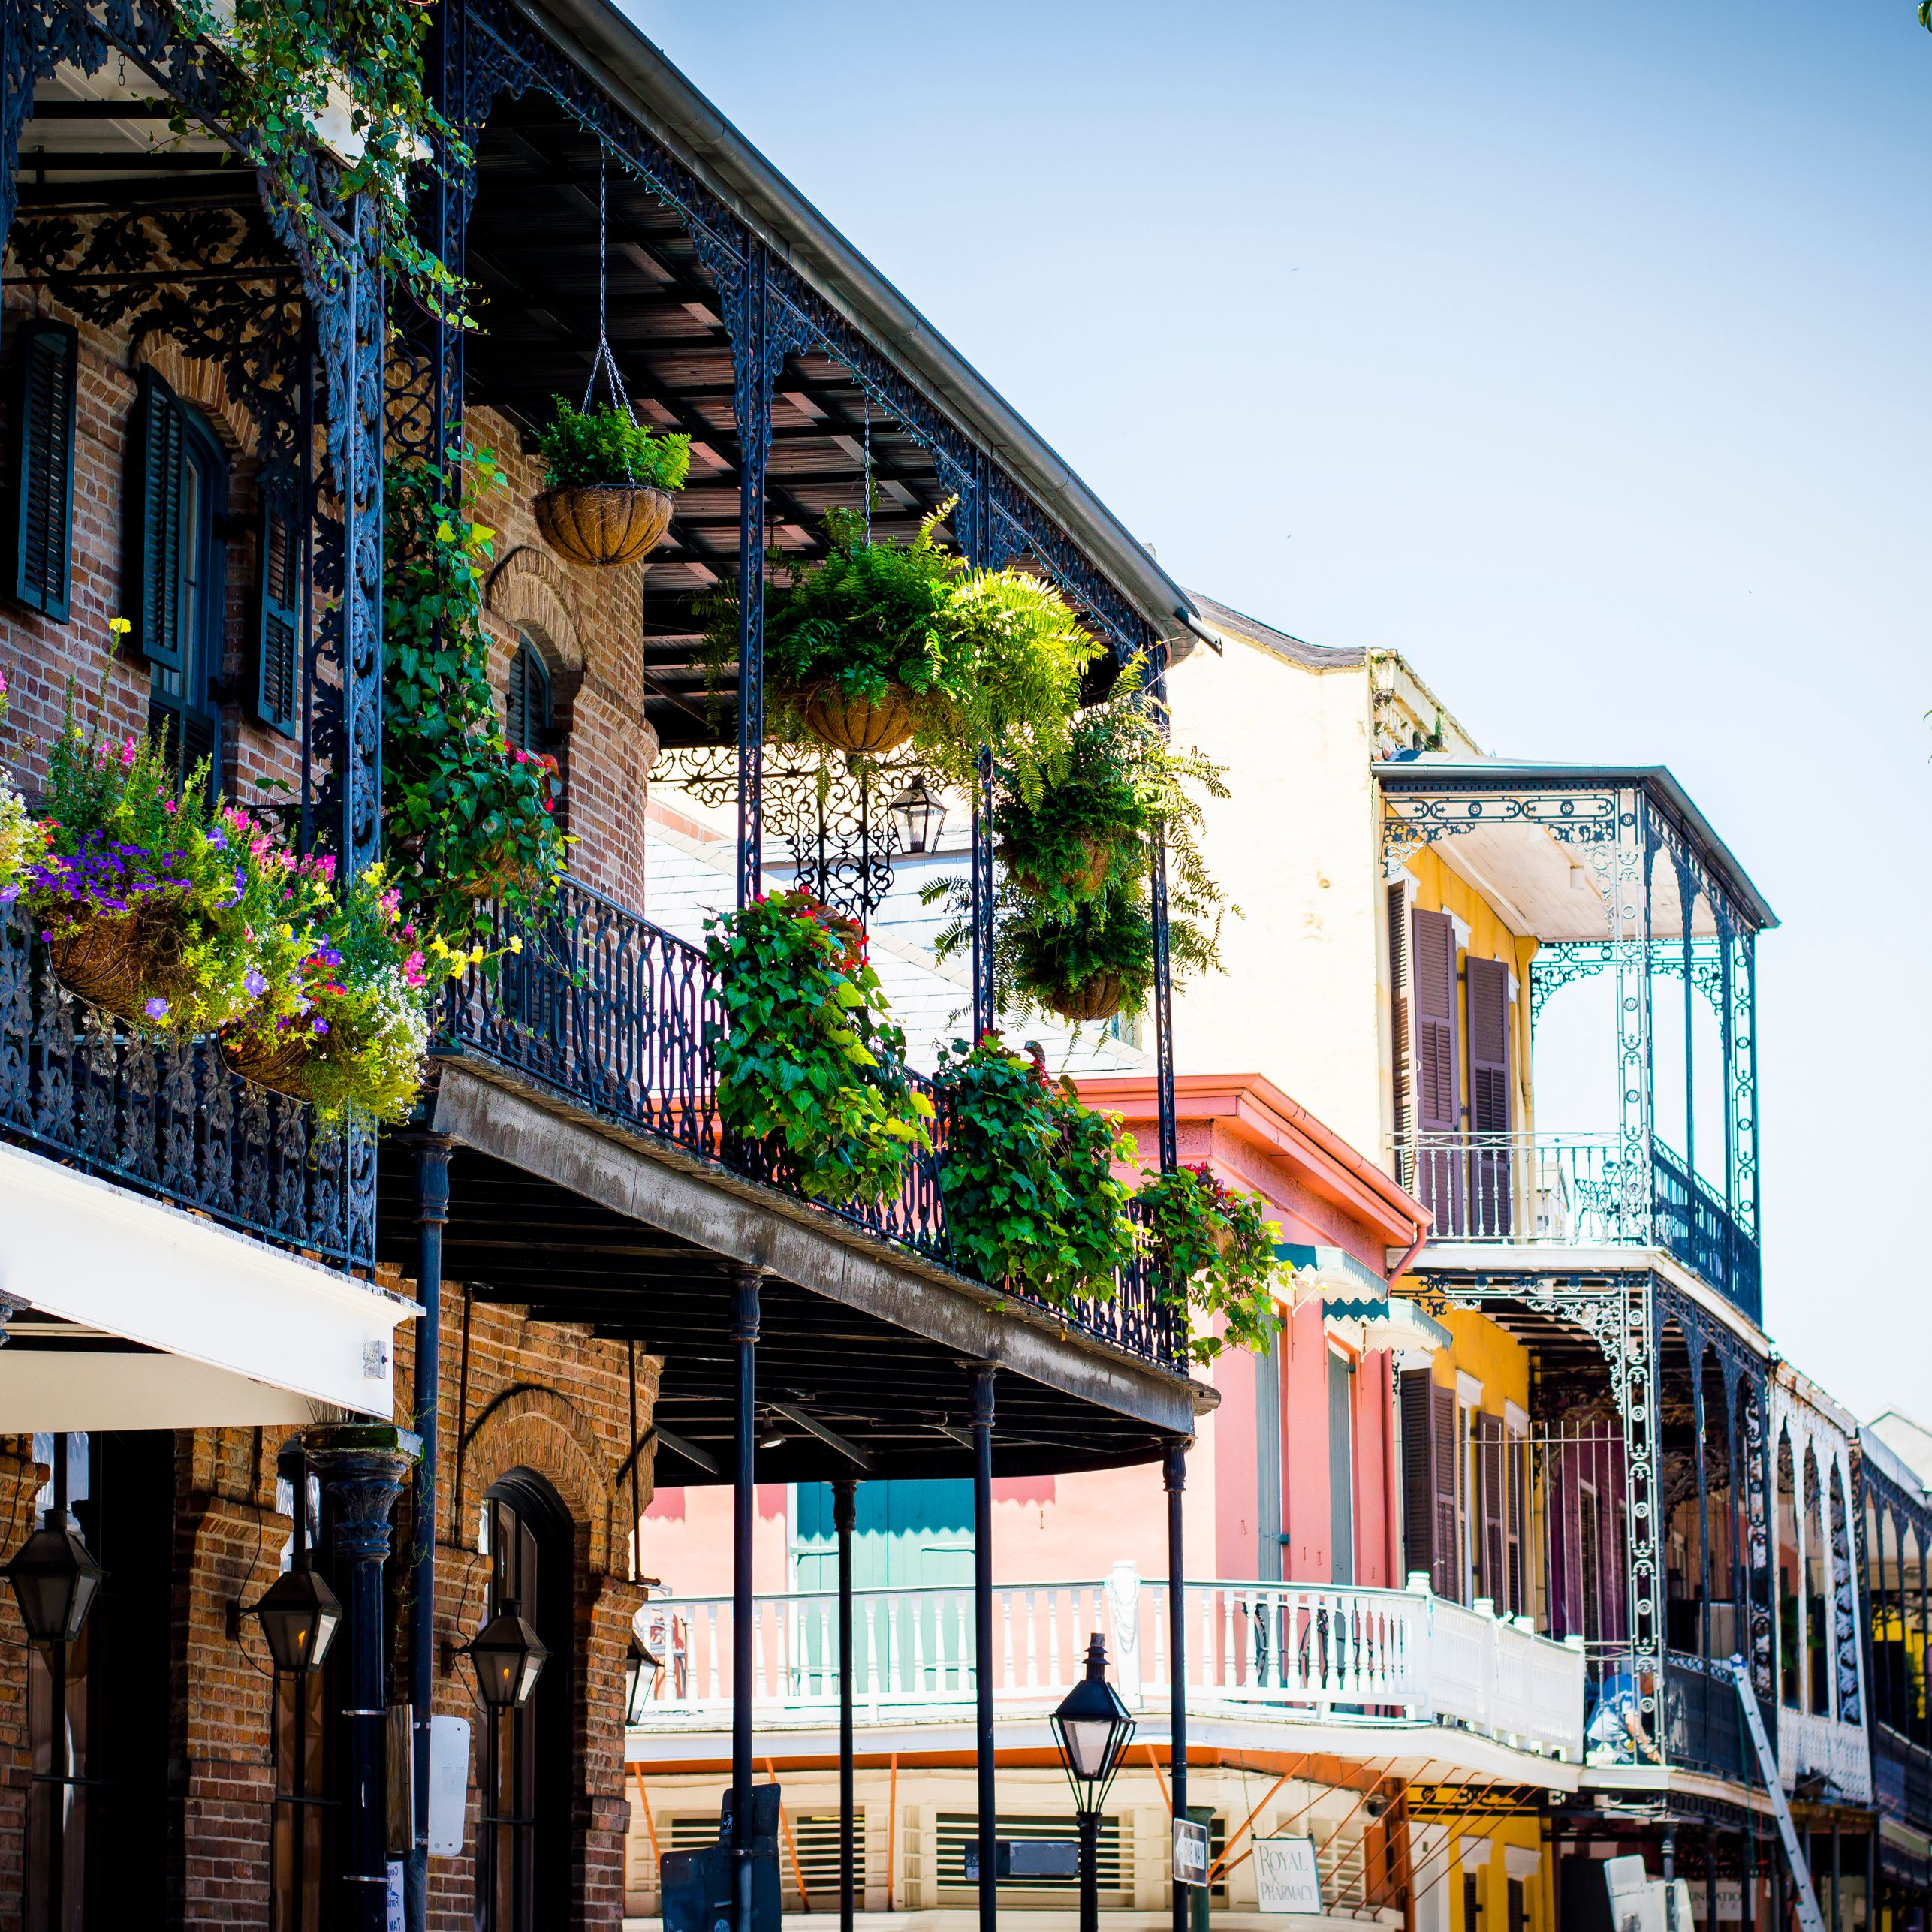 Quick New Orleans Trip Planned? Here's a Two-Day Whirlwind Itinerary